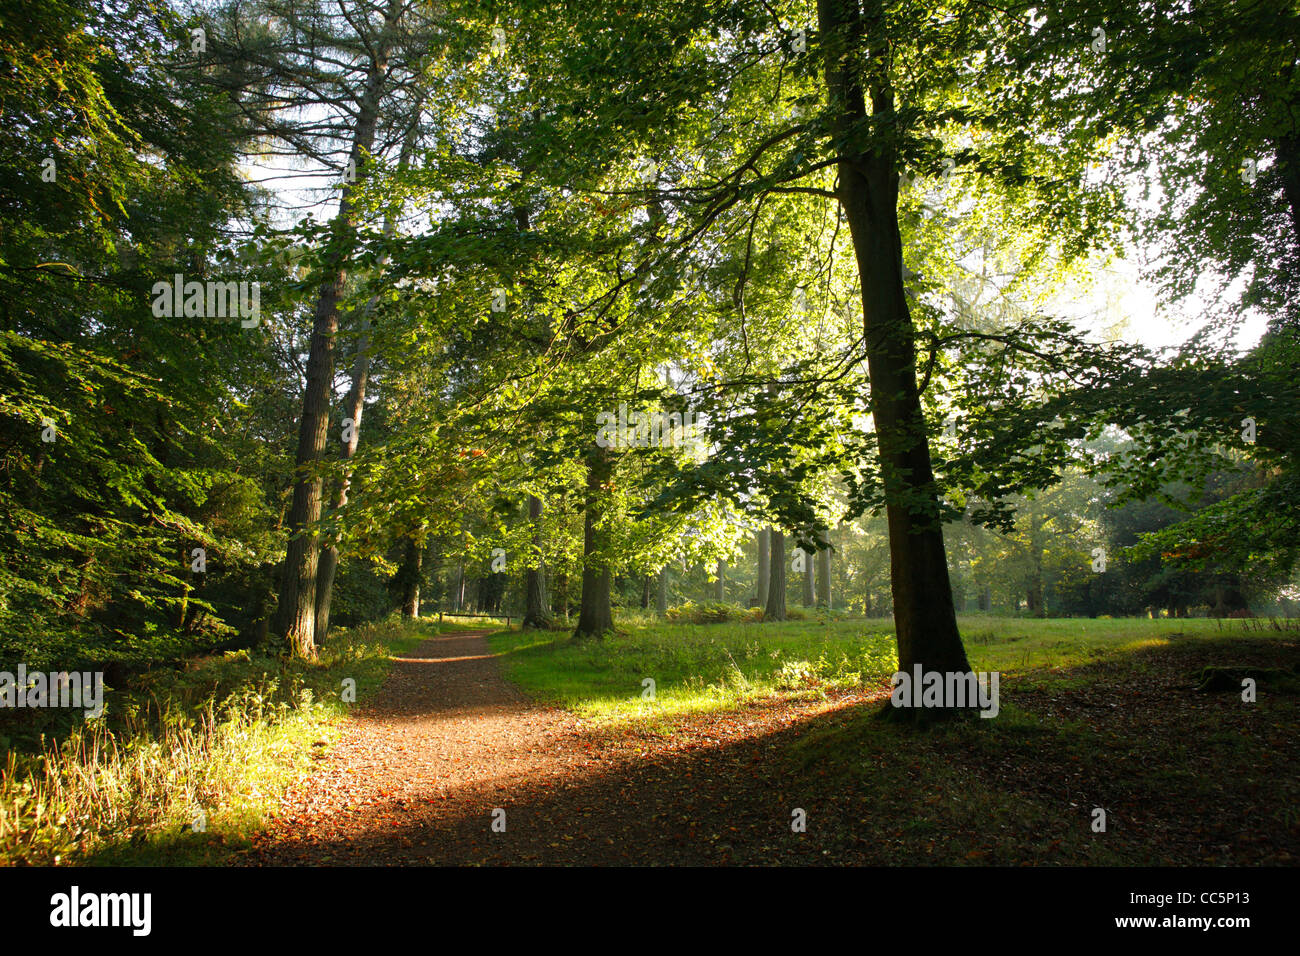 Path through mixed Beech/coniferous woodland. The Forest of Dean, Gloucestershire, England. September. - Stock Image